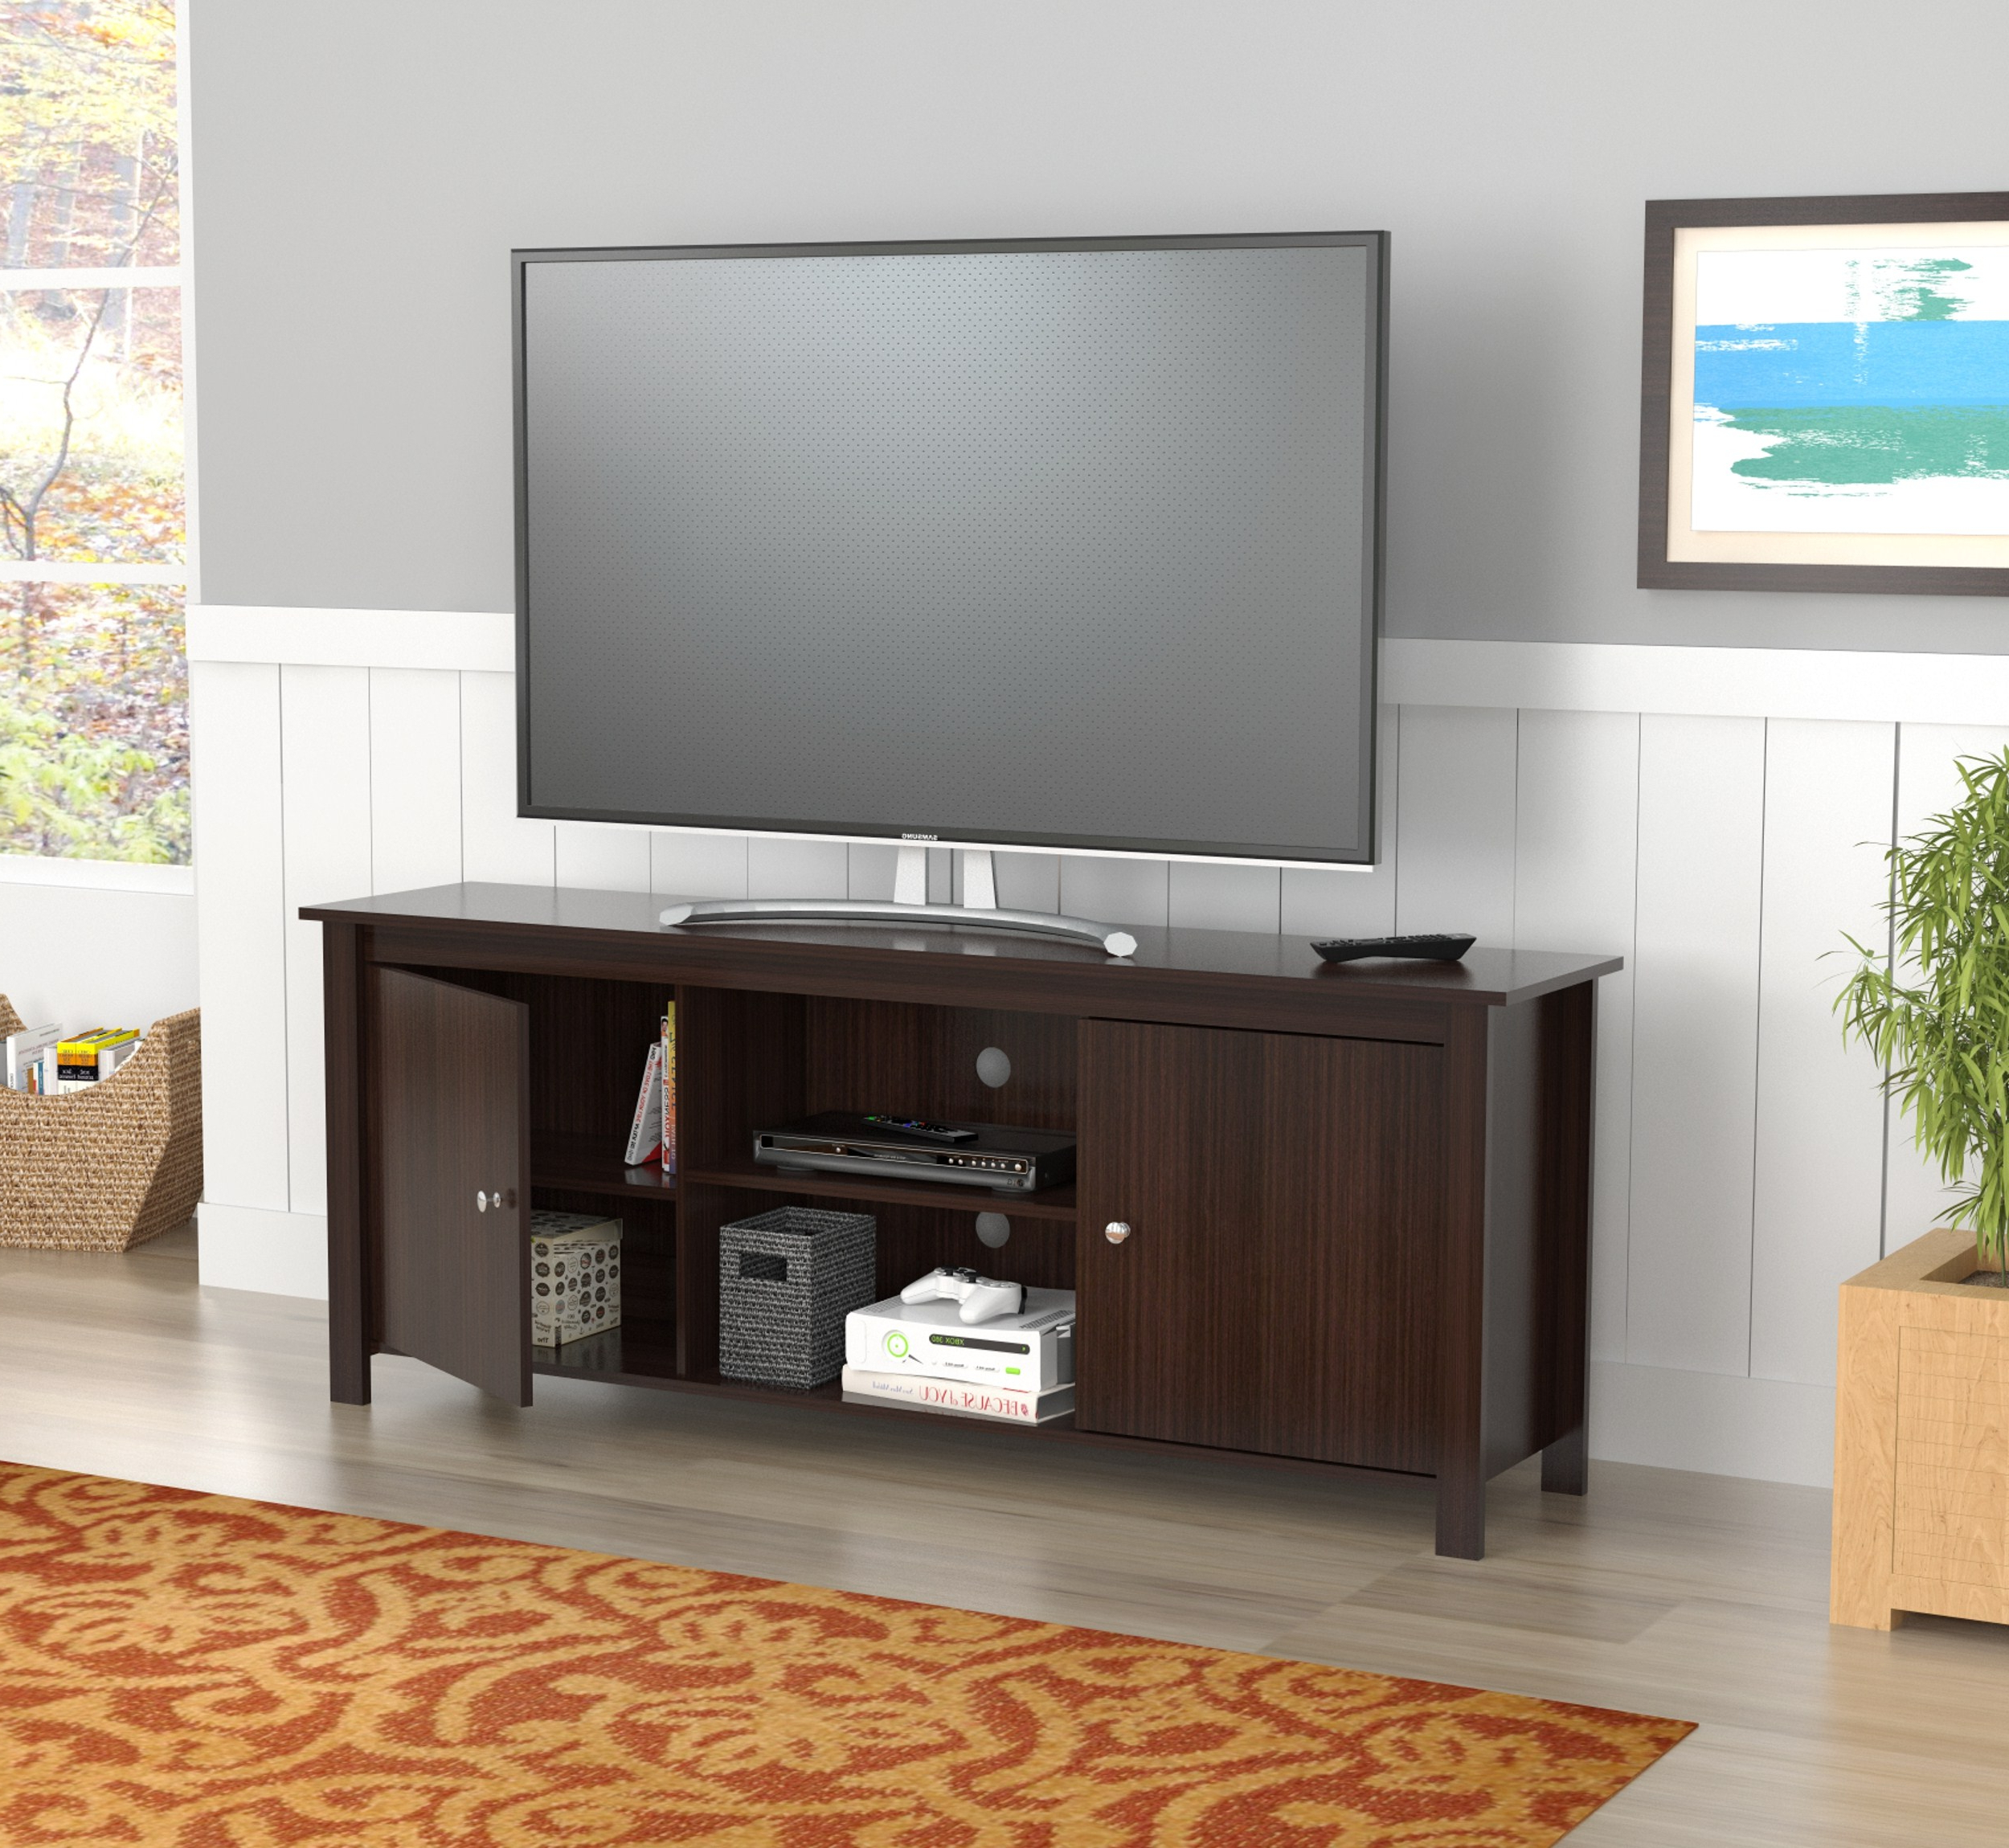 """Ahana Tv Stands For Tvs Up To 60"""" Inside Well Known Inval Contemporary Espresso 60 Inch Tv Stand – Walmart (View 18 of 25)"""